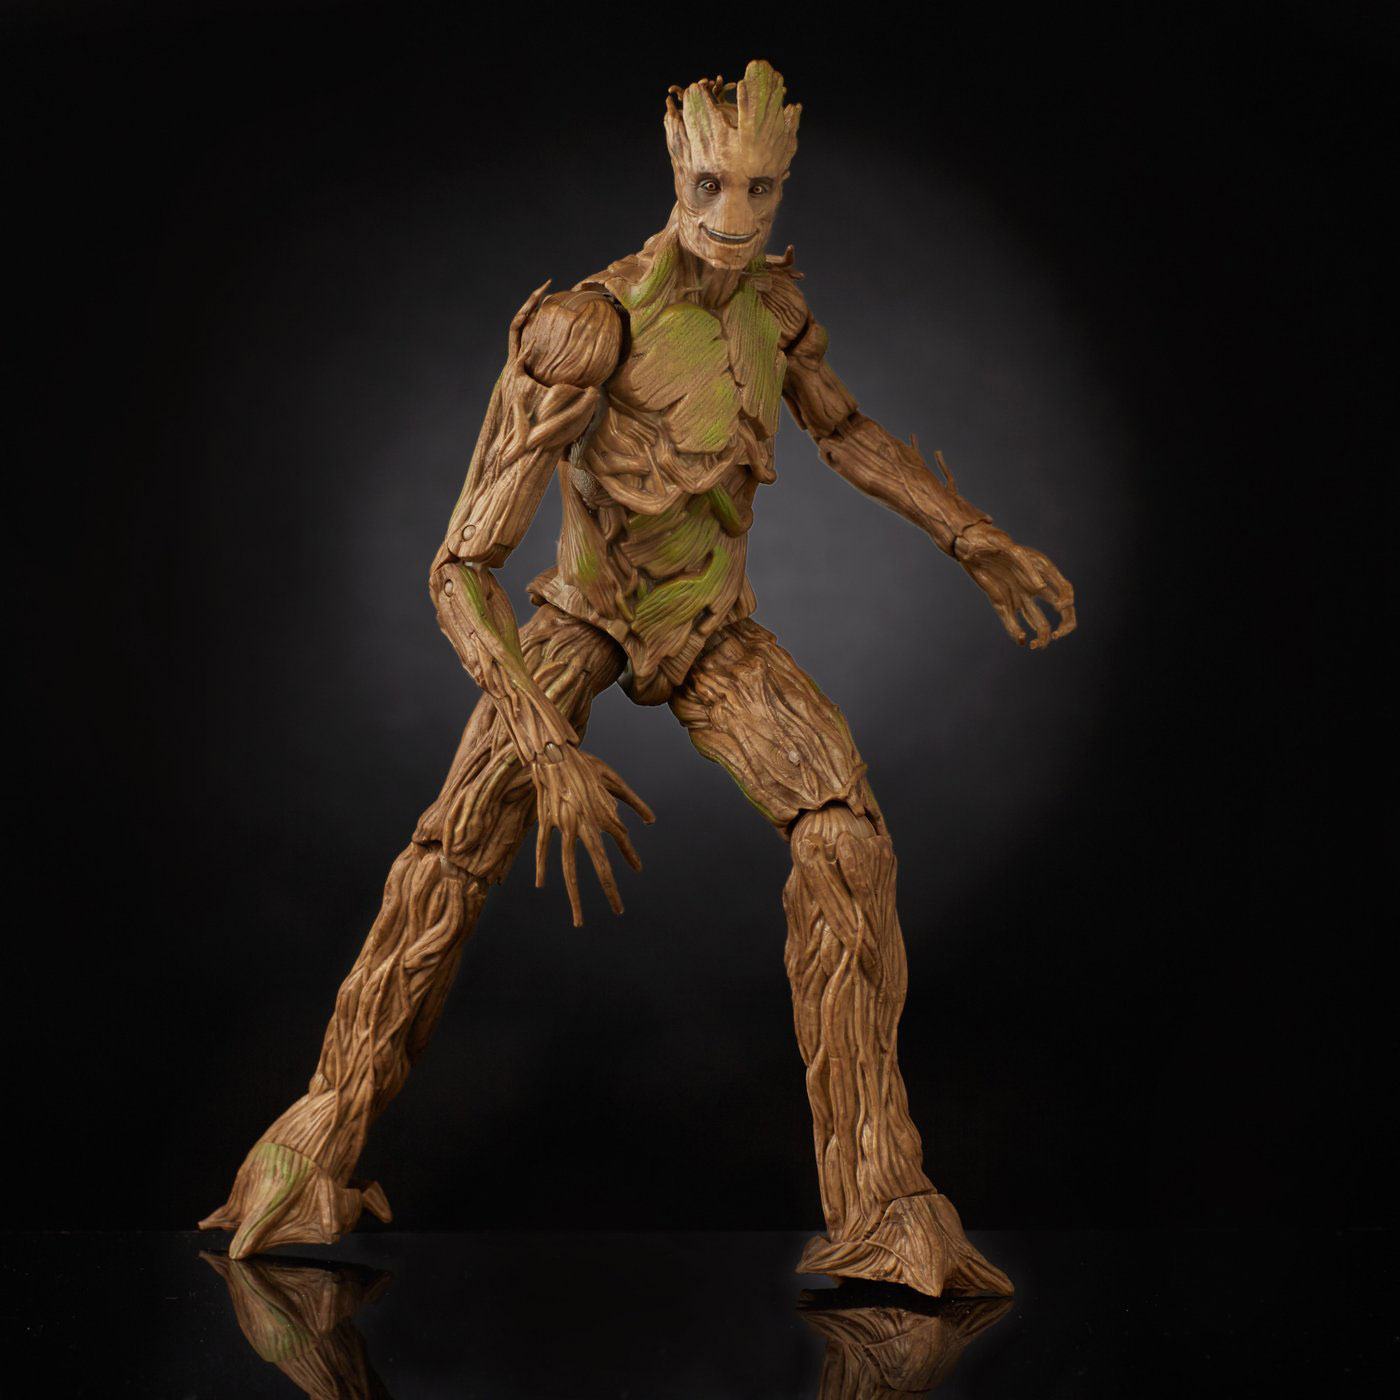 marvel-legends-groot-evolution-action-figure-set-2